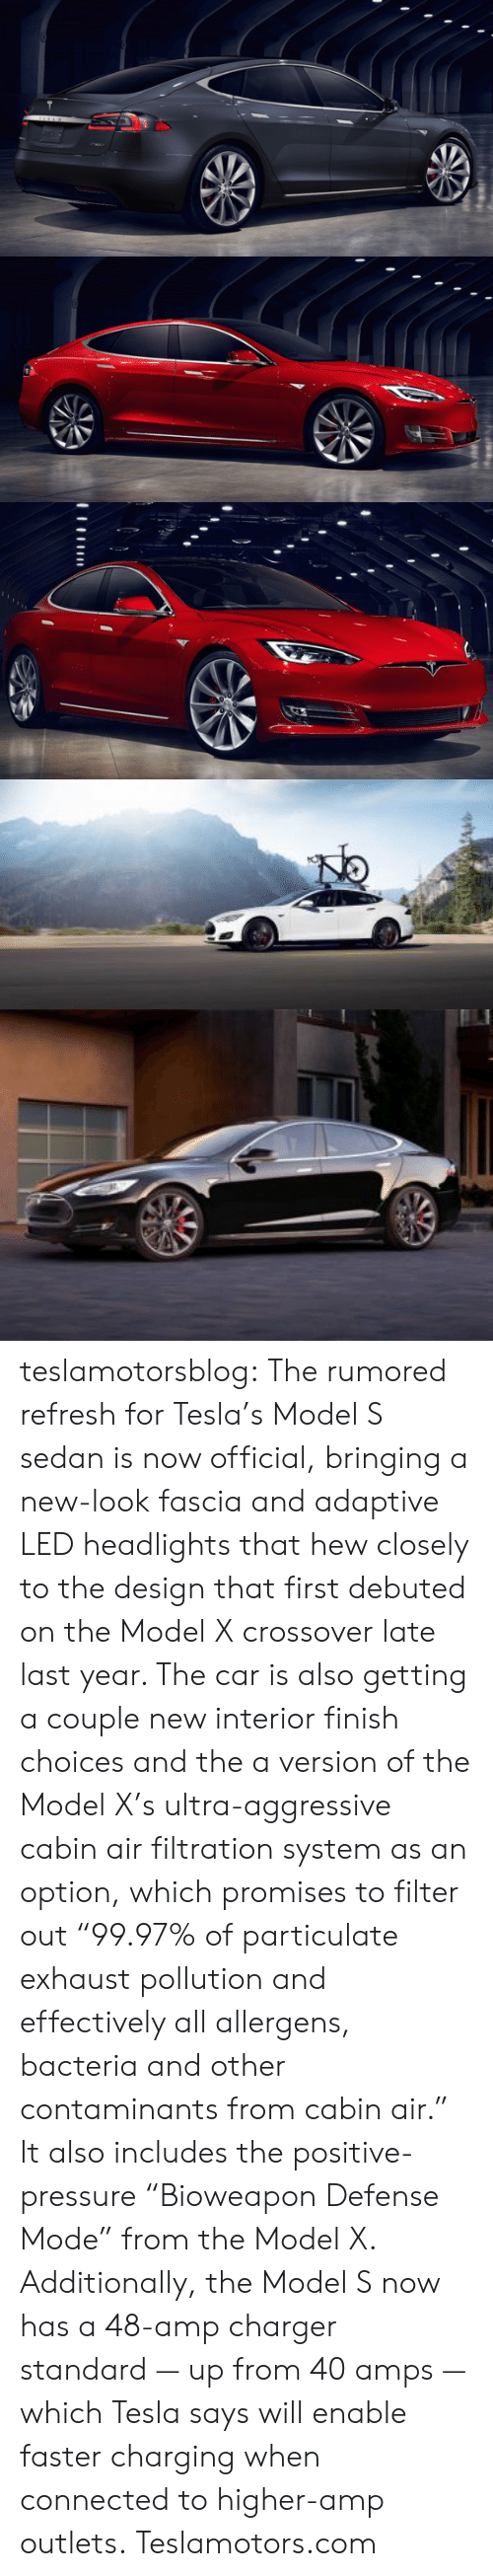 "Pressure, Tumblr, and Blog: teslamotorsblog:  The rumored refresh for Tesla's Model S sedan is now official, bringing a new-look fascia and adaptive LED headlights that hew closely to the design that first debuted on the Model X crossover late last year. The car is also getting a couple new interior finish choices and the a version of the Model X's ultra-aggressive cabin air filtration system as an option, which promises to filter out ""99.97% of particulate exhaust pollution and effectively all allergens, bacteria and other contaminants from cabin air."" It also includes the positive-pressure ""Bioweapon Defense Mode"" from the Model X.  Additionally, the Model S now has a 48-amp charger standard — up from 40 amps — which Tesla says will enable faster charging when connected to higher-amp outlets.  Teslamotors.com"